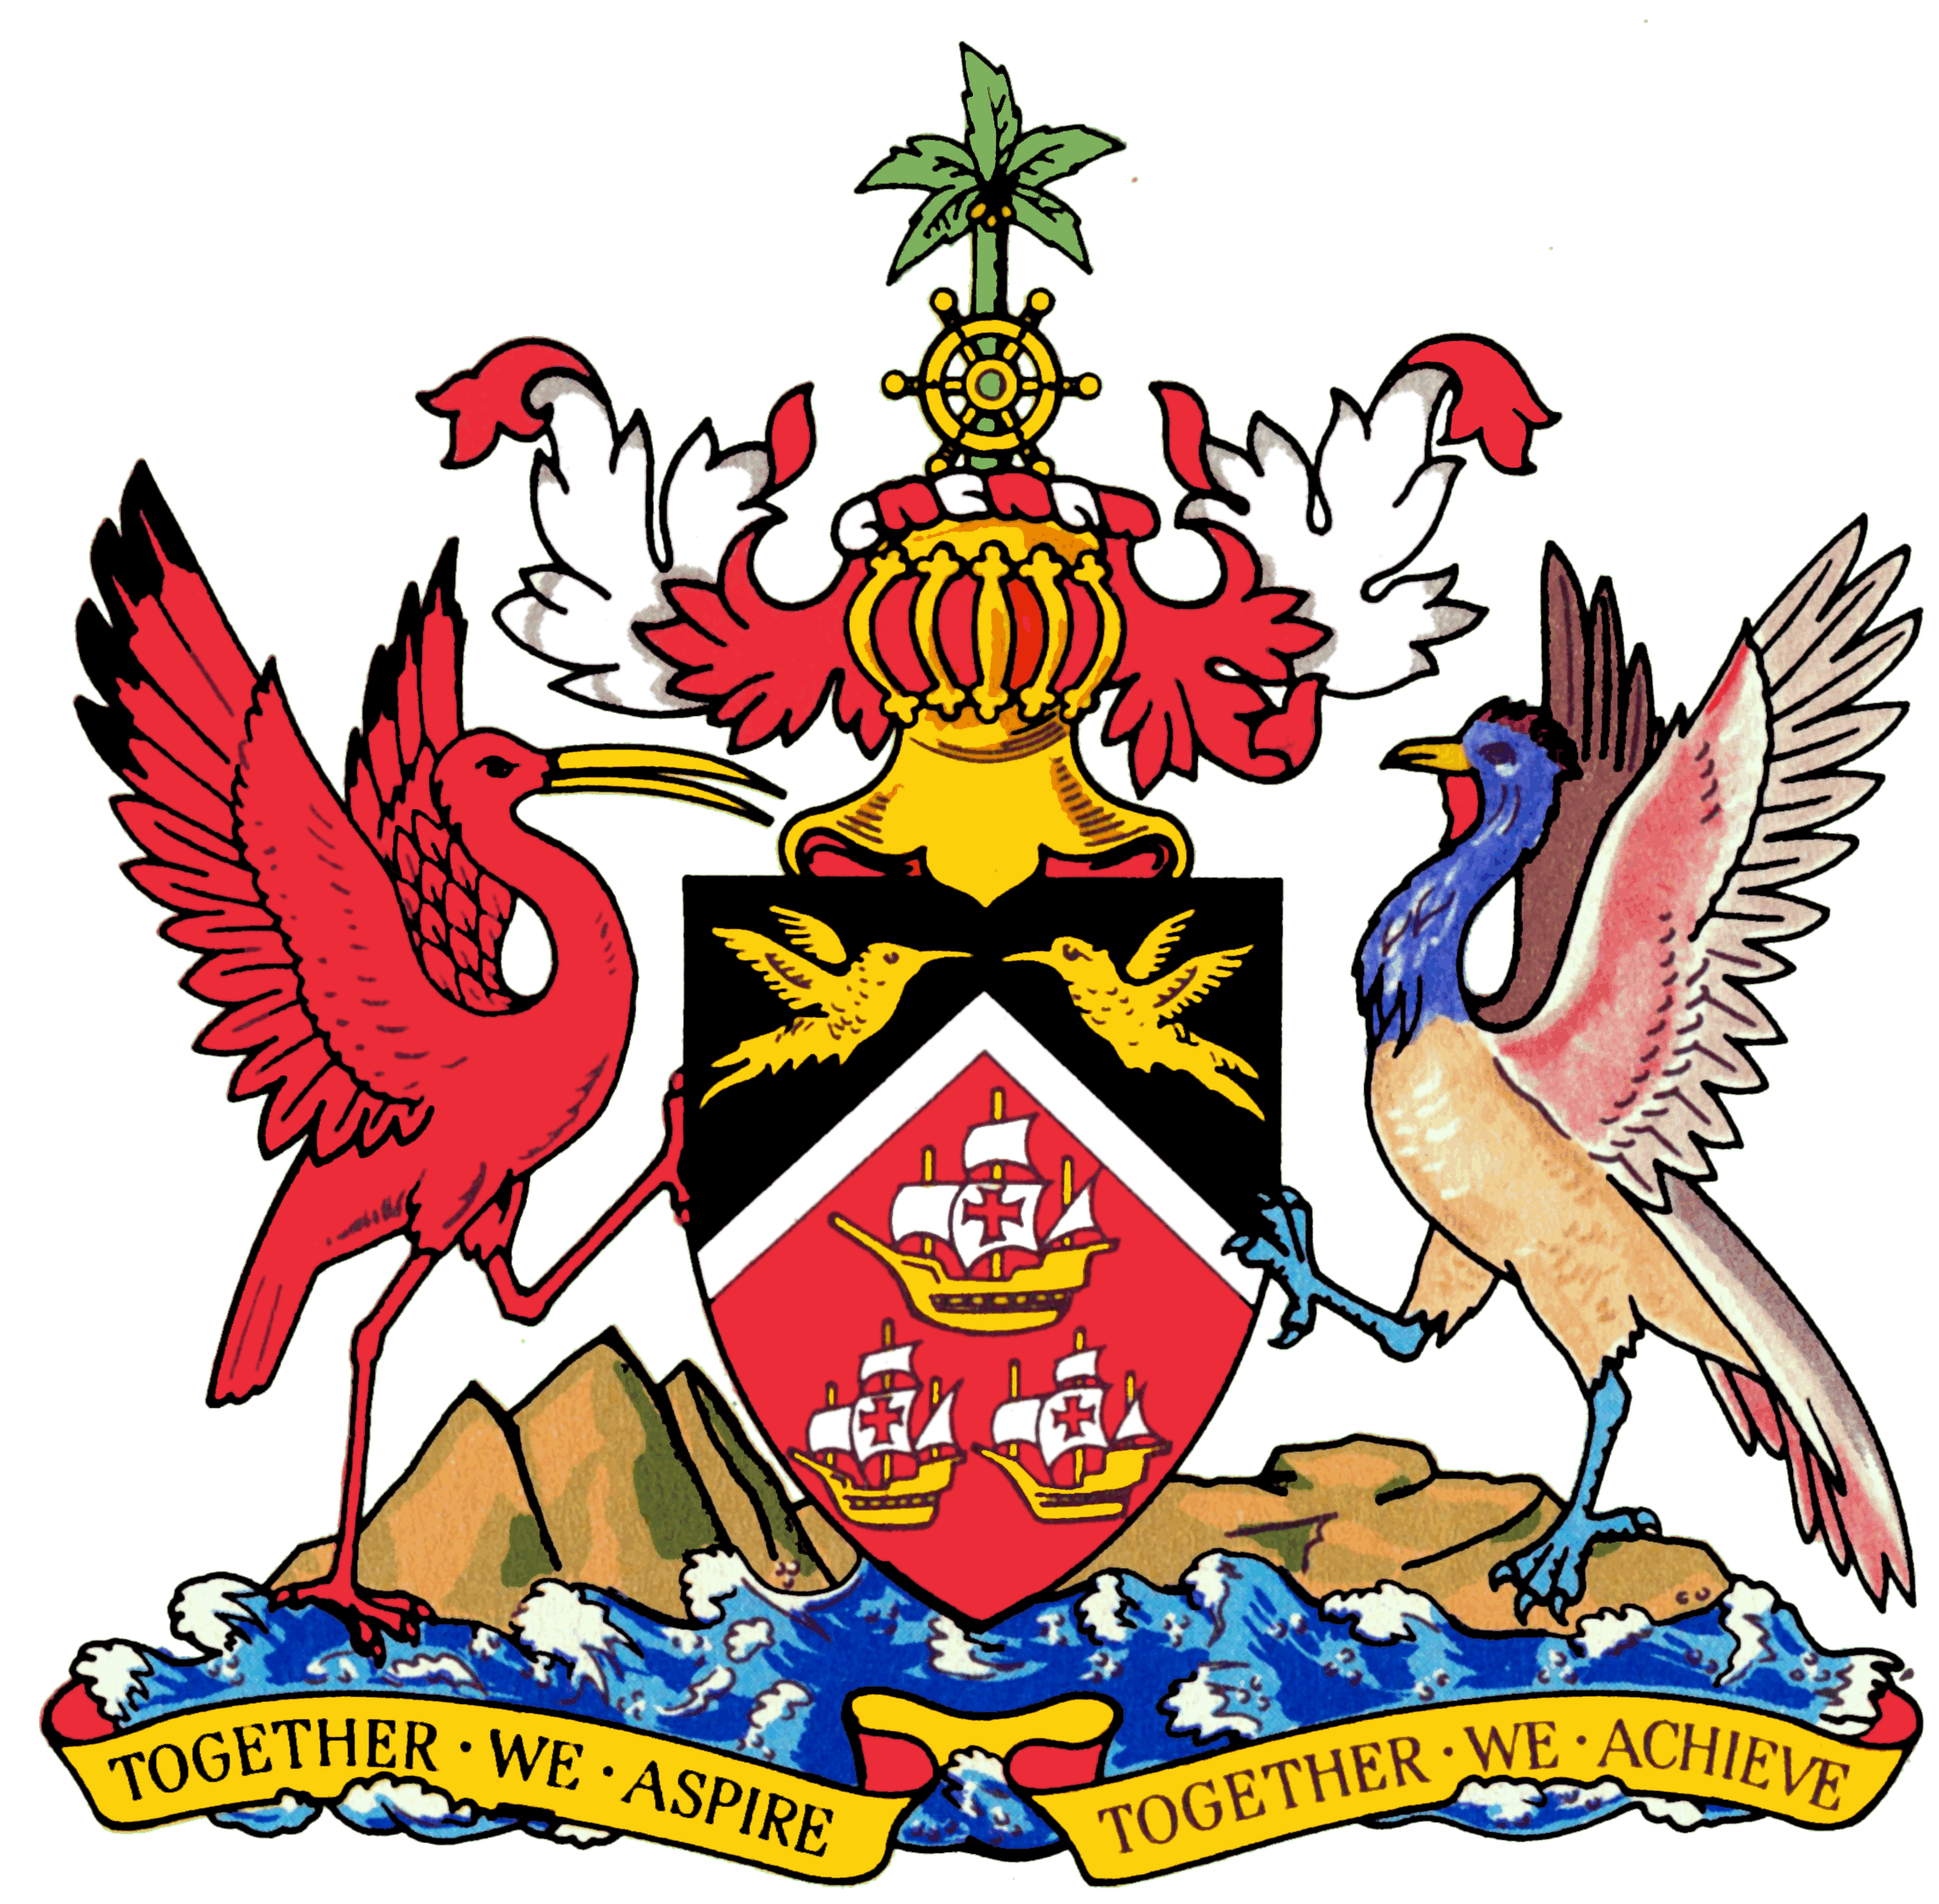 http://upload.wikimedia.org/wikipedia/commons/9/9a/Coat_of_arms_of_Trinidad_and_Tobago.png